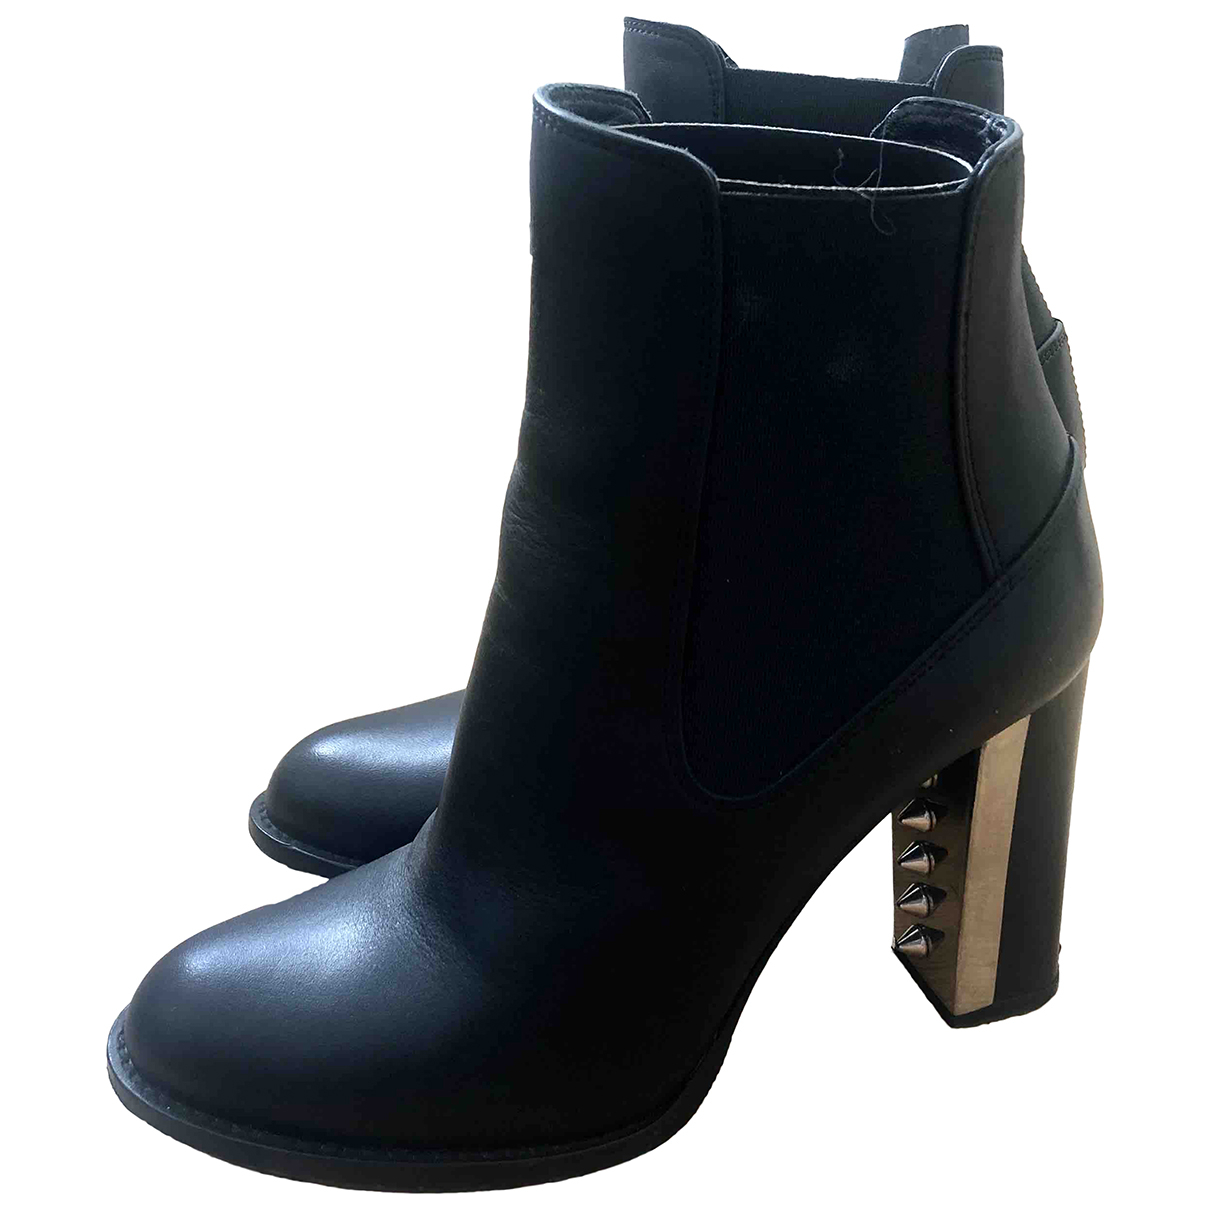 Alexander Mcqueen \N Black Leather Ankle boots for Women 36 EU